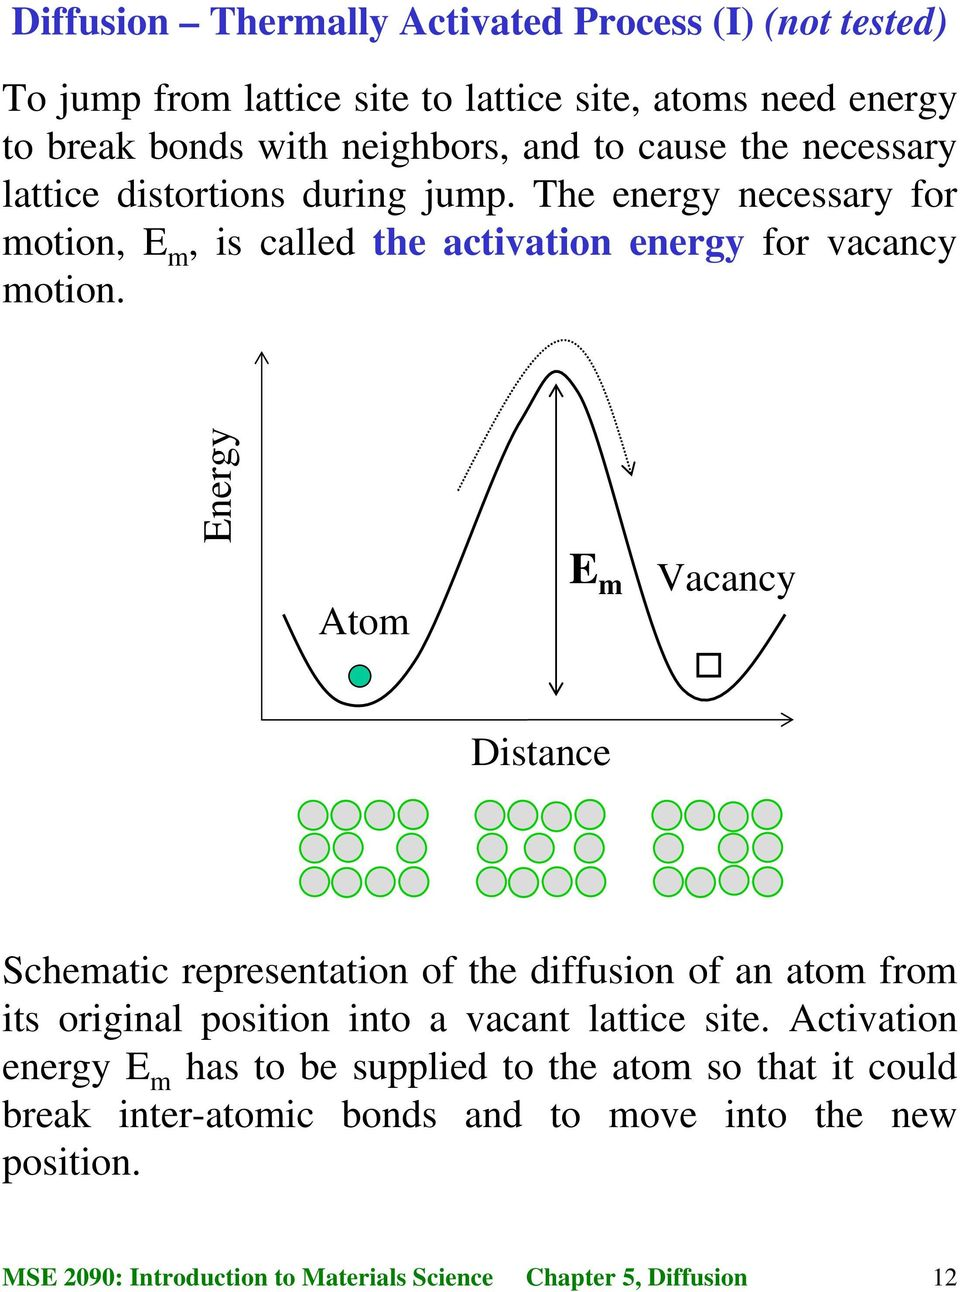 The energy necessary for motion, E m, is called the activation energy for vacancy motion.